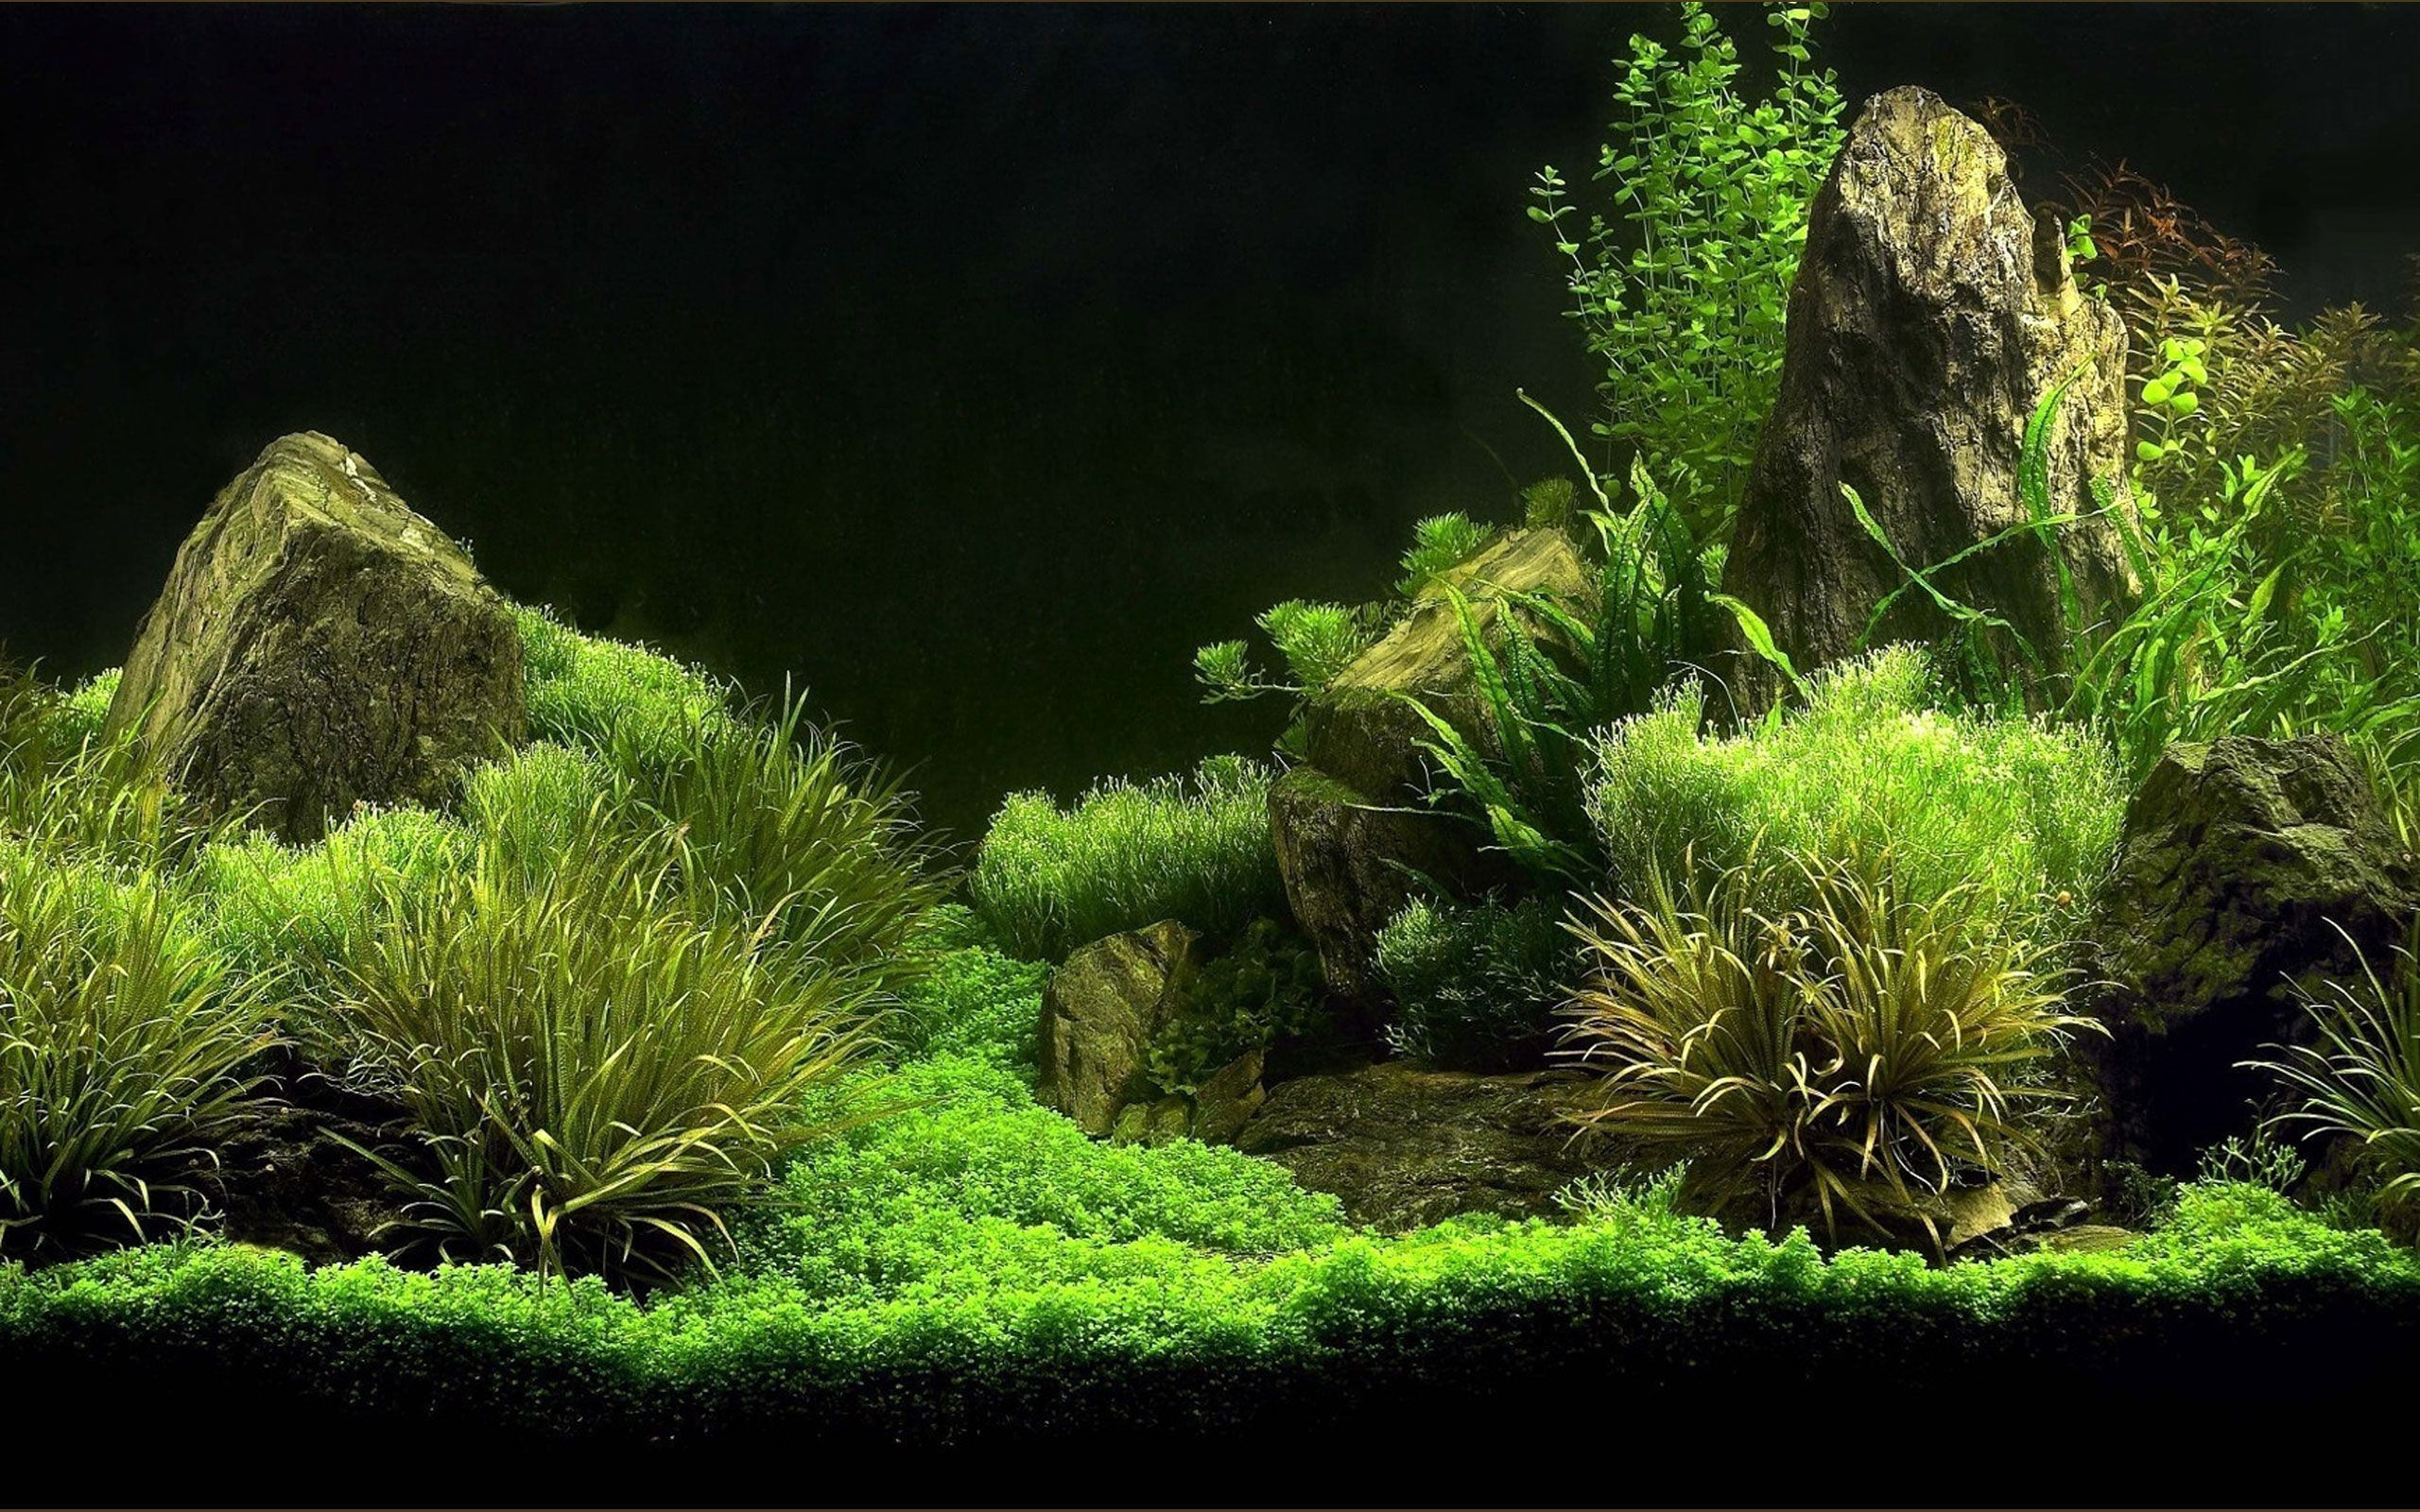 Aquarium Live Wallpaper Android Apps on Google Play ...